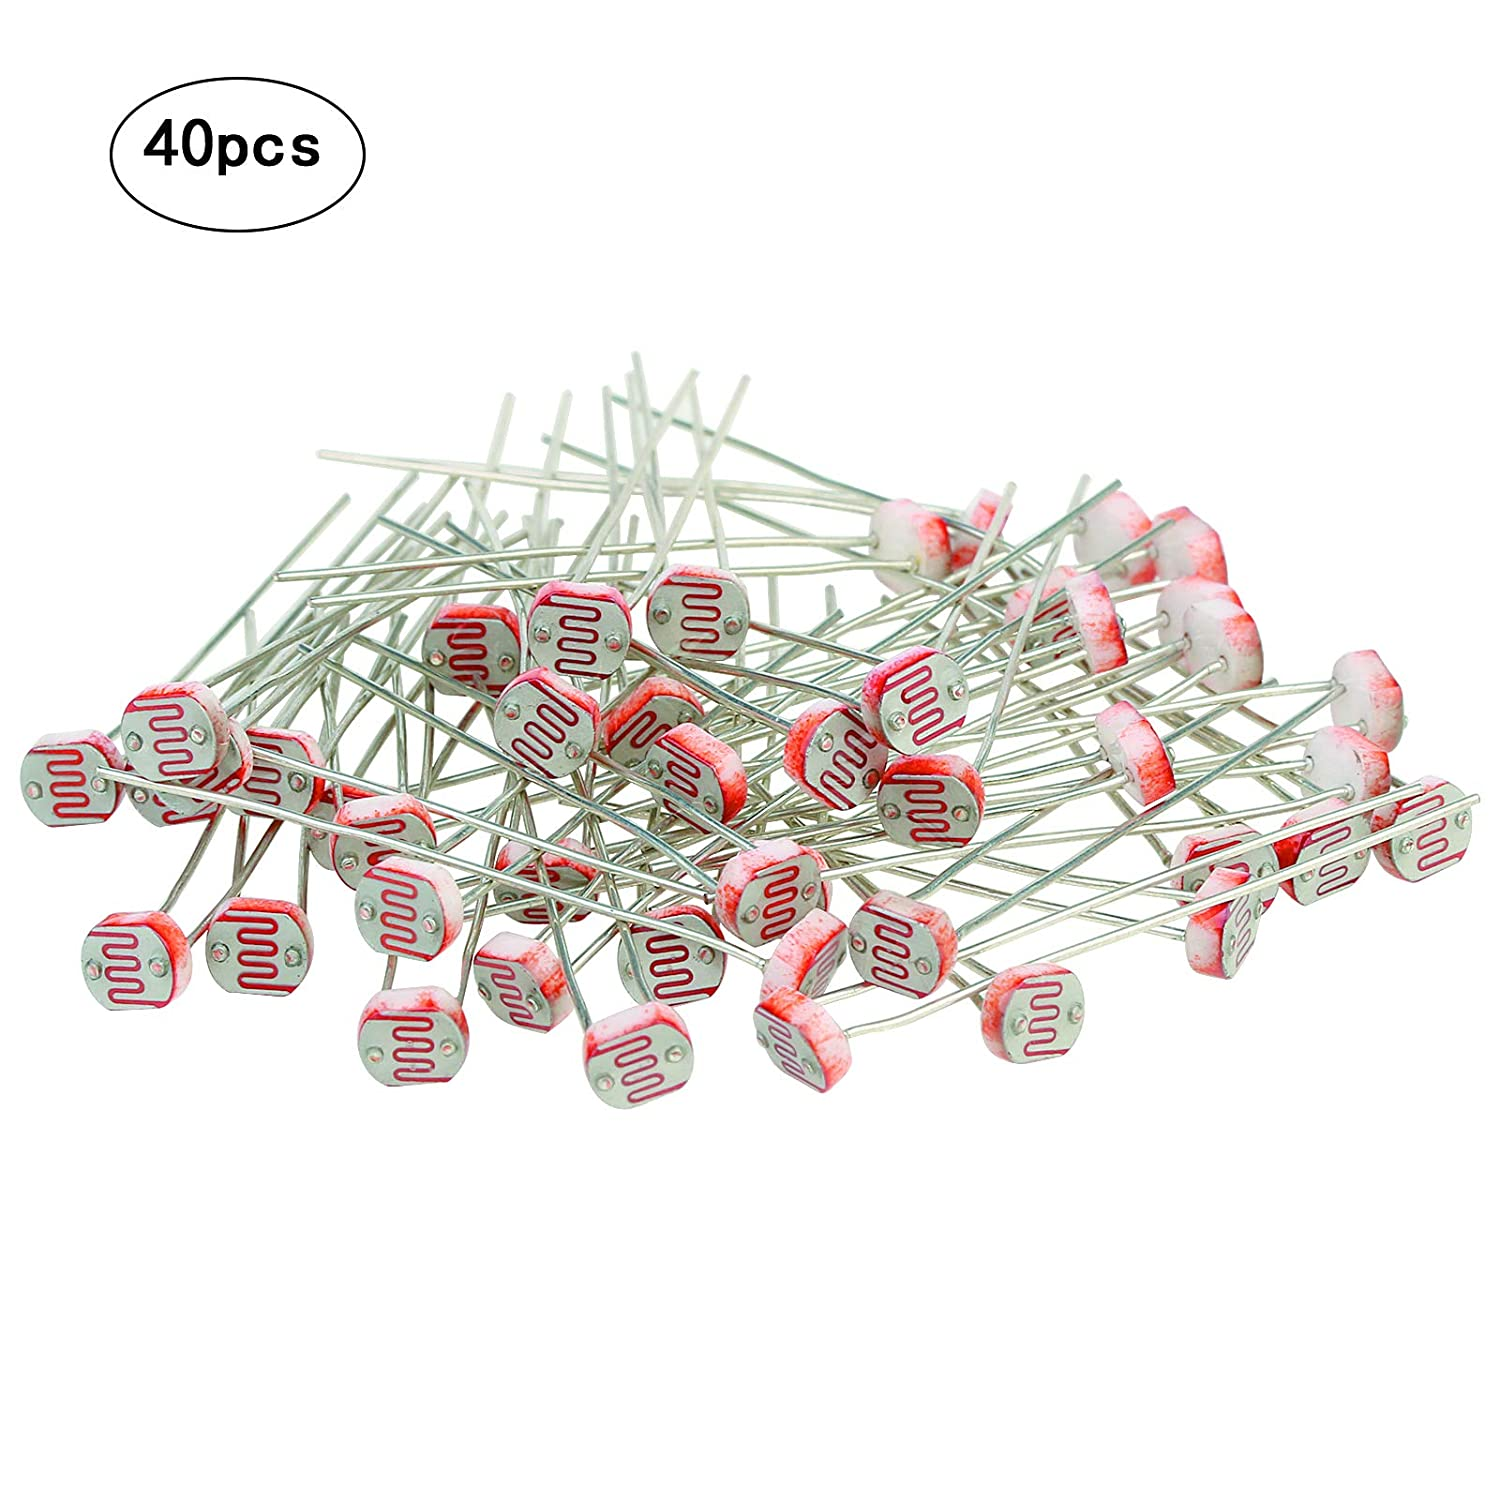 LANMOK 40 Pieces 150V Photo Light Sensitive Resistors 5mm Photoresistor Optoresistor 5539 Light Dependent Resistor